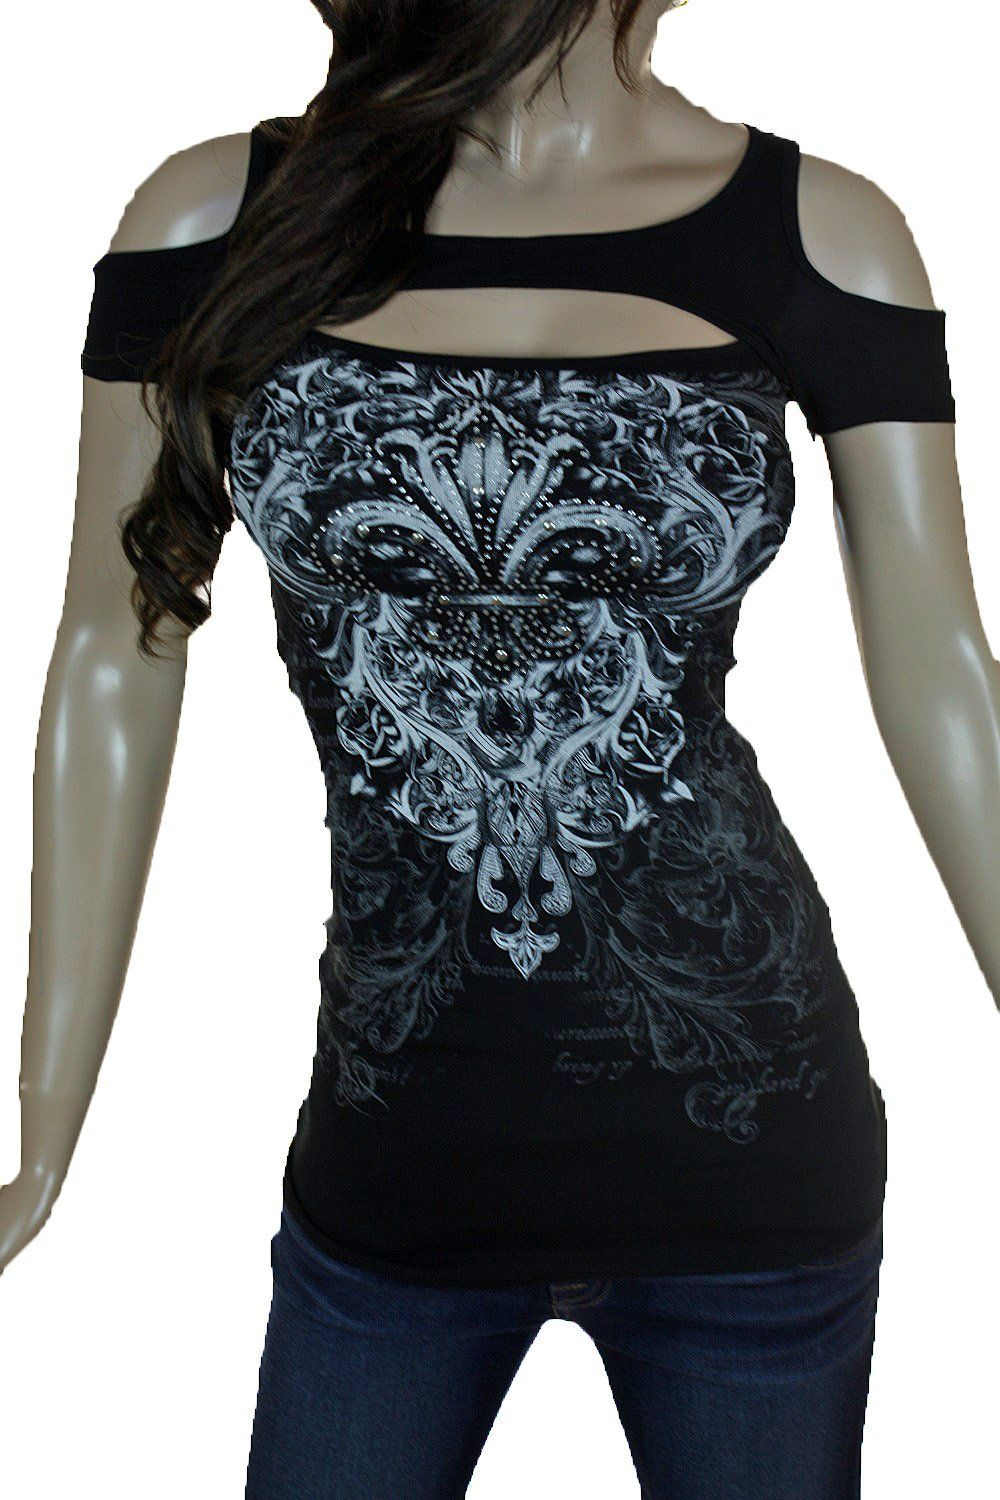 Bling Rhinestone Tattoo Cross Rose Wings Peekaboo Open Cold Shoulders New Top (Small, Black Cold Shoulder)